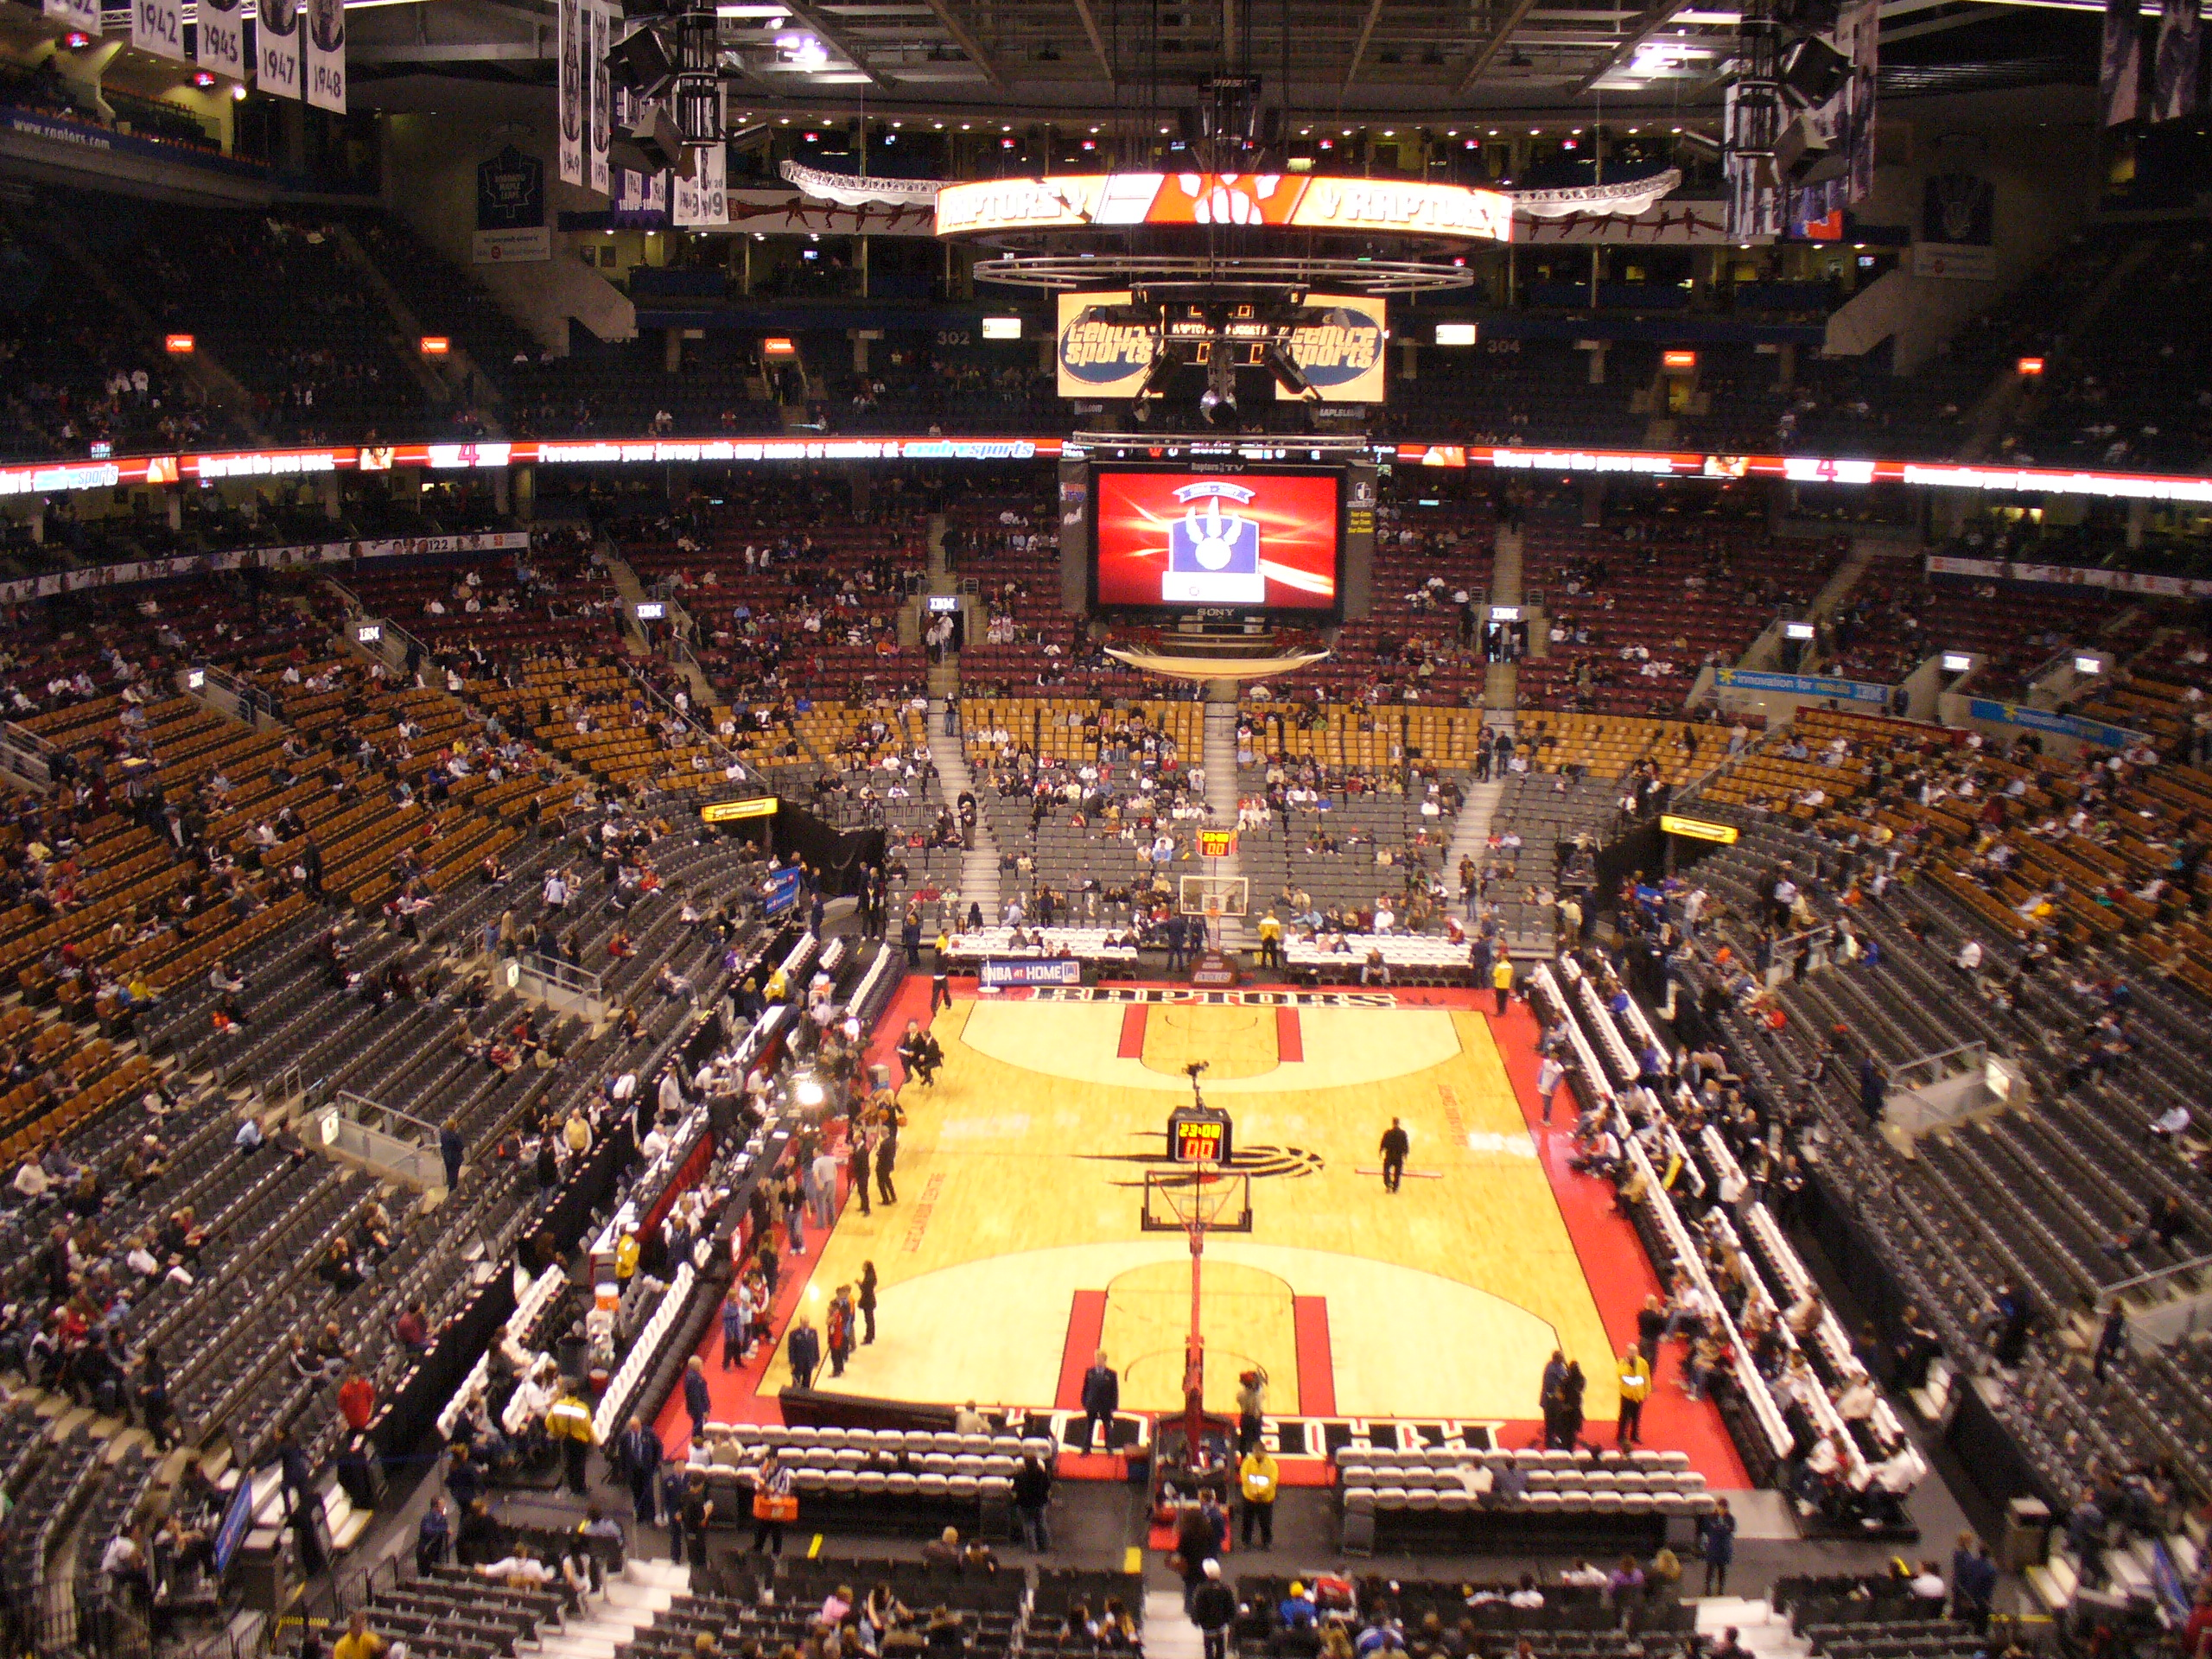 <a href='http://www.ticketsreview.com/venue/air-canada-centre-schedule/'>Air Canada Centre tickets</a>